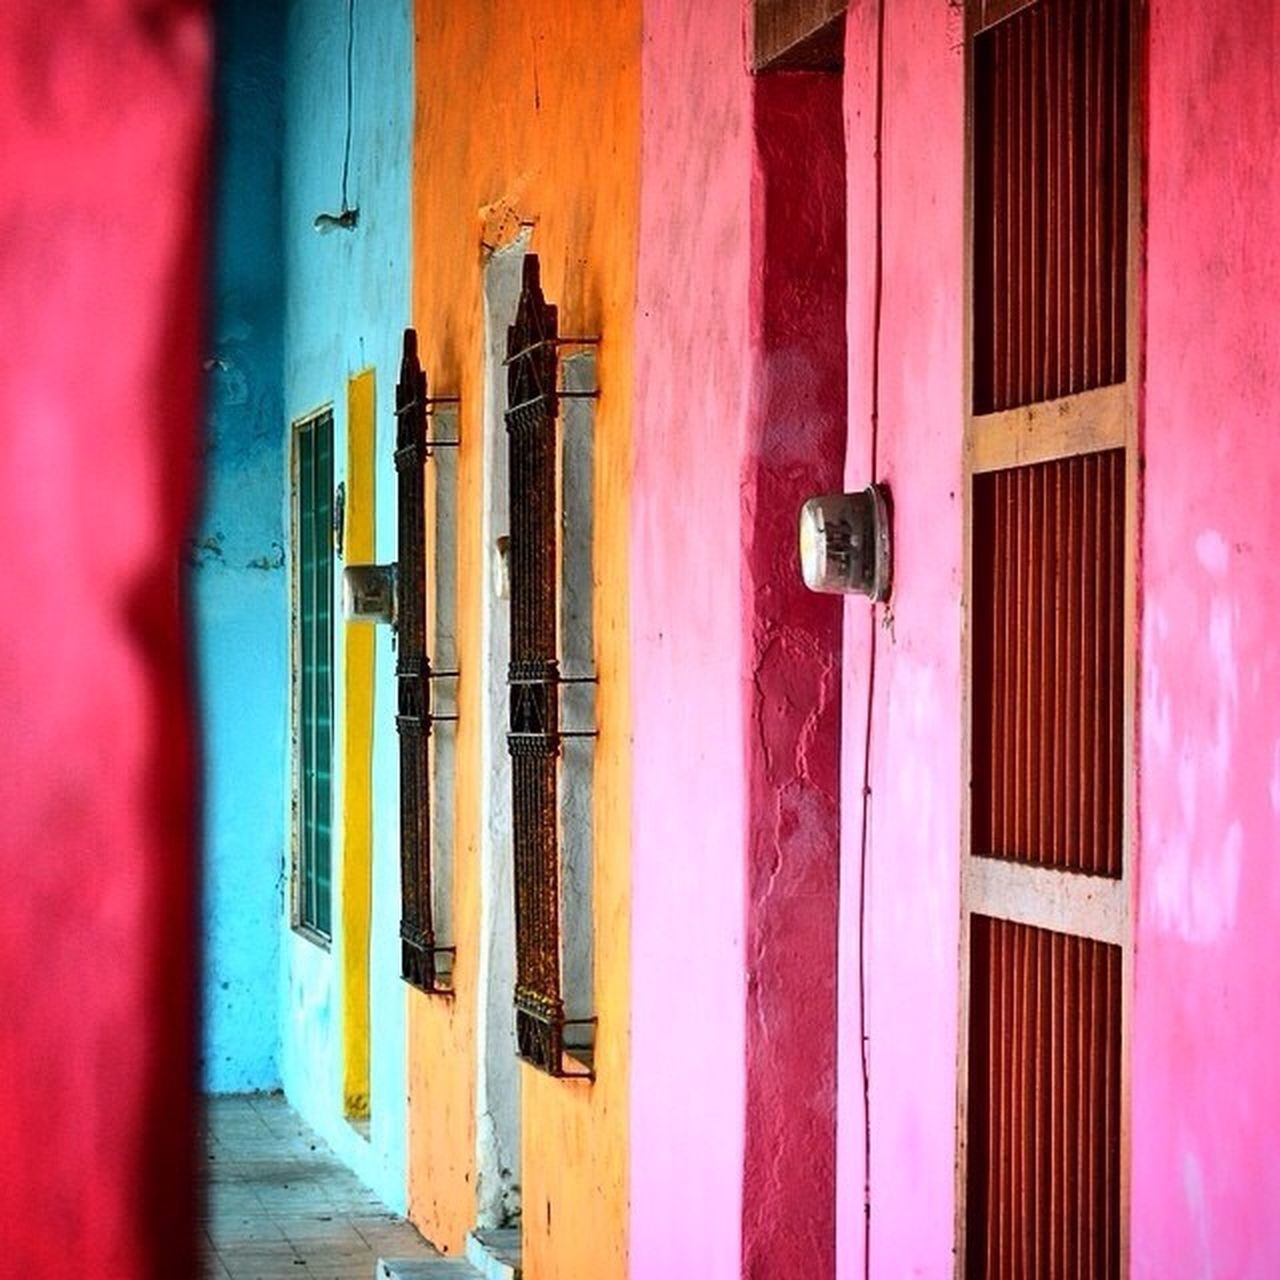 Plano de color en Tlacotalpan Architecture Built Structure Pink Color Wall - Building Feature Building Exterior In A Row Red Red Color Man Made Object Modern No People Vibrant Color Color Manipulation Multi Colored Tlacotalpan Veracruz Tipical Mexico